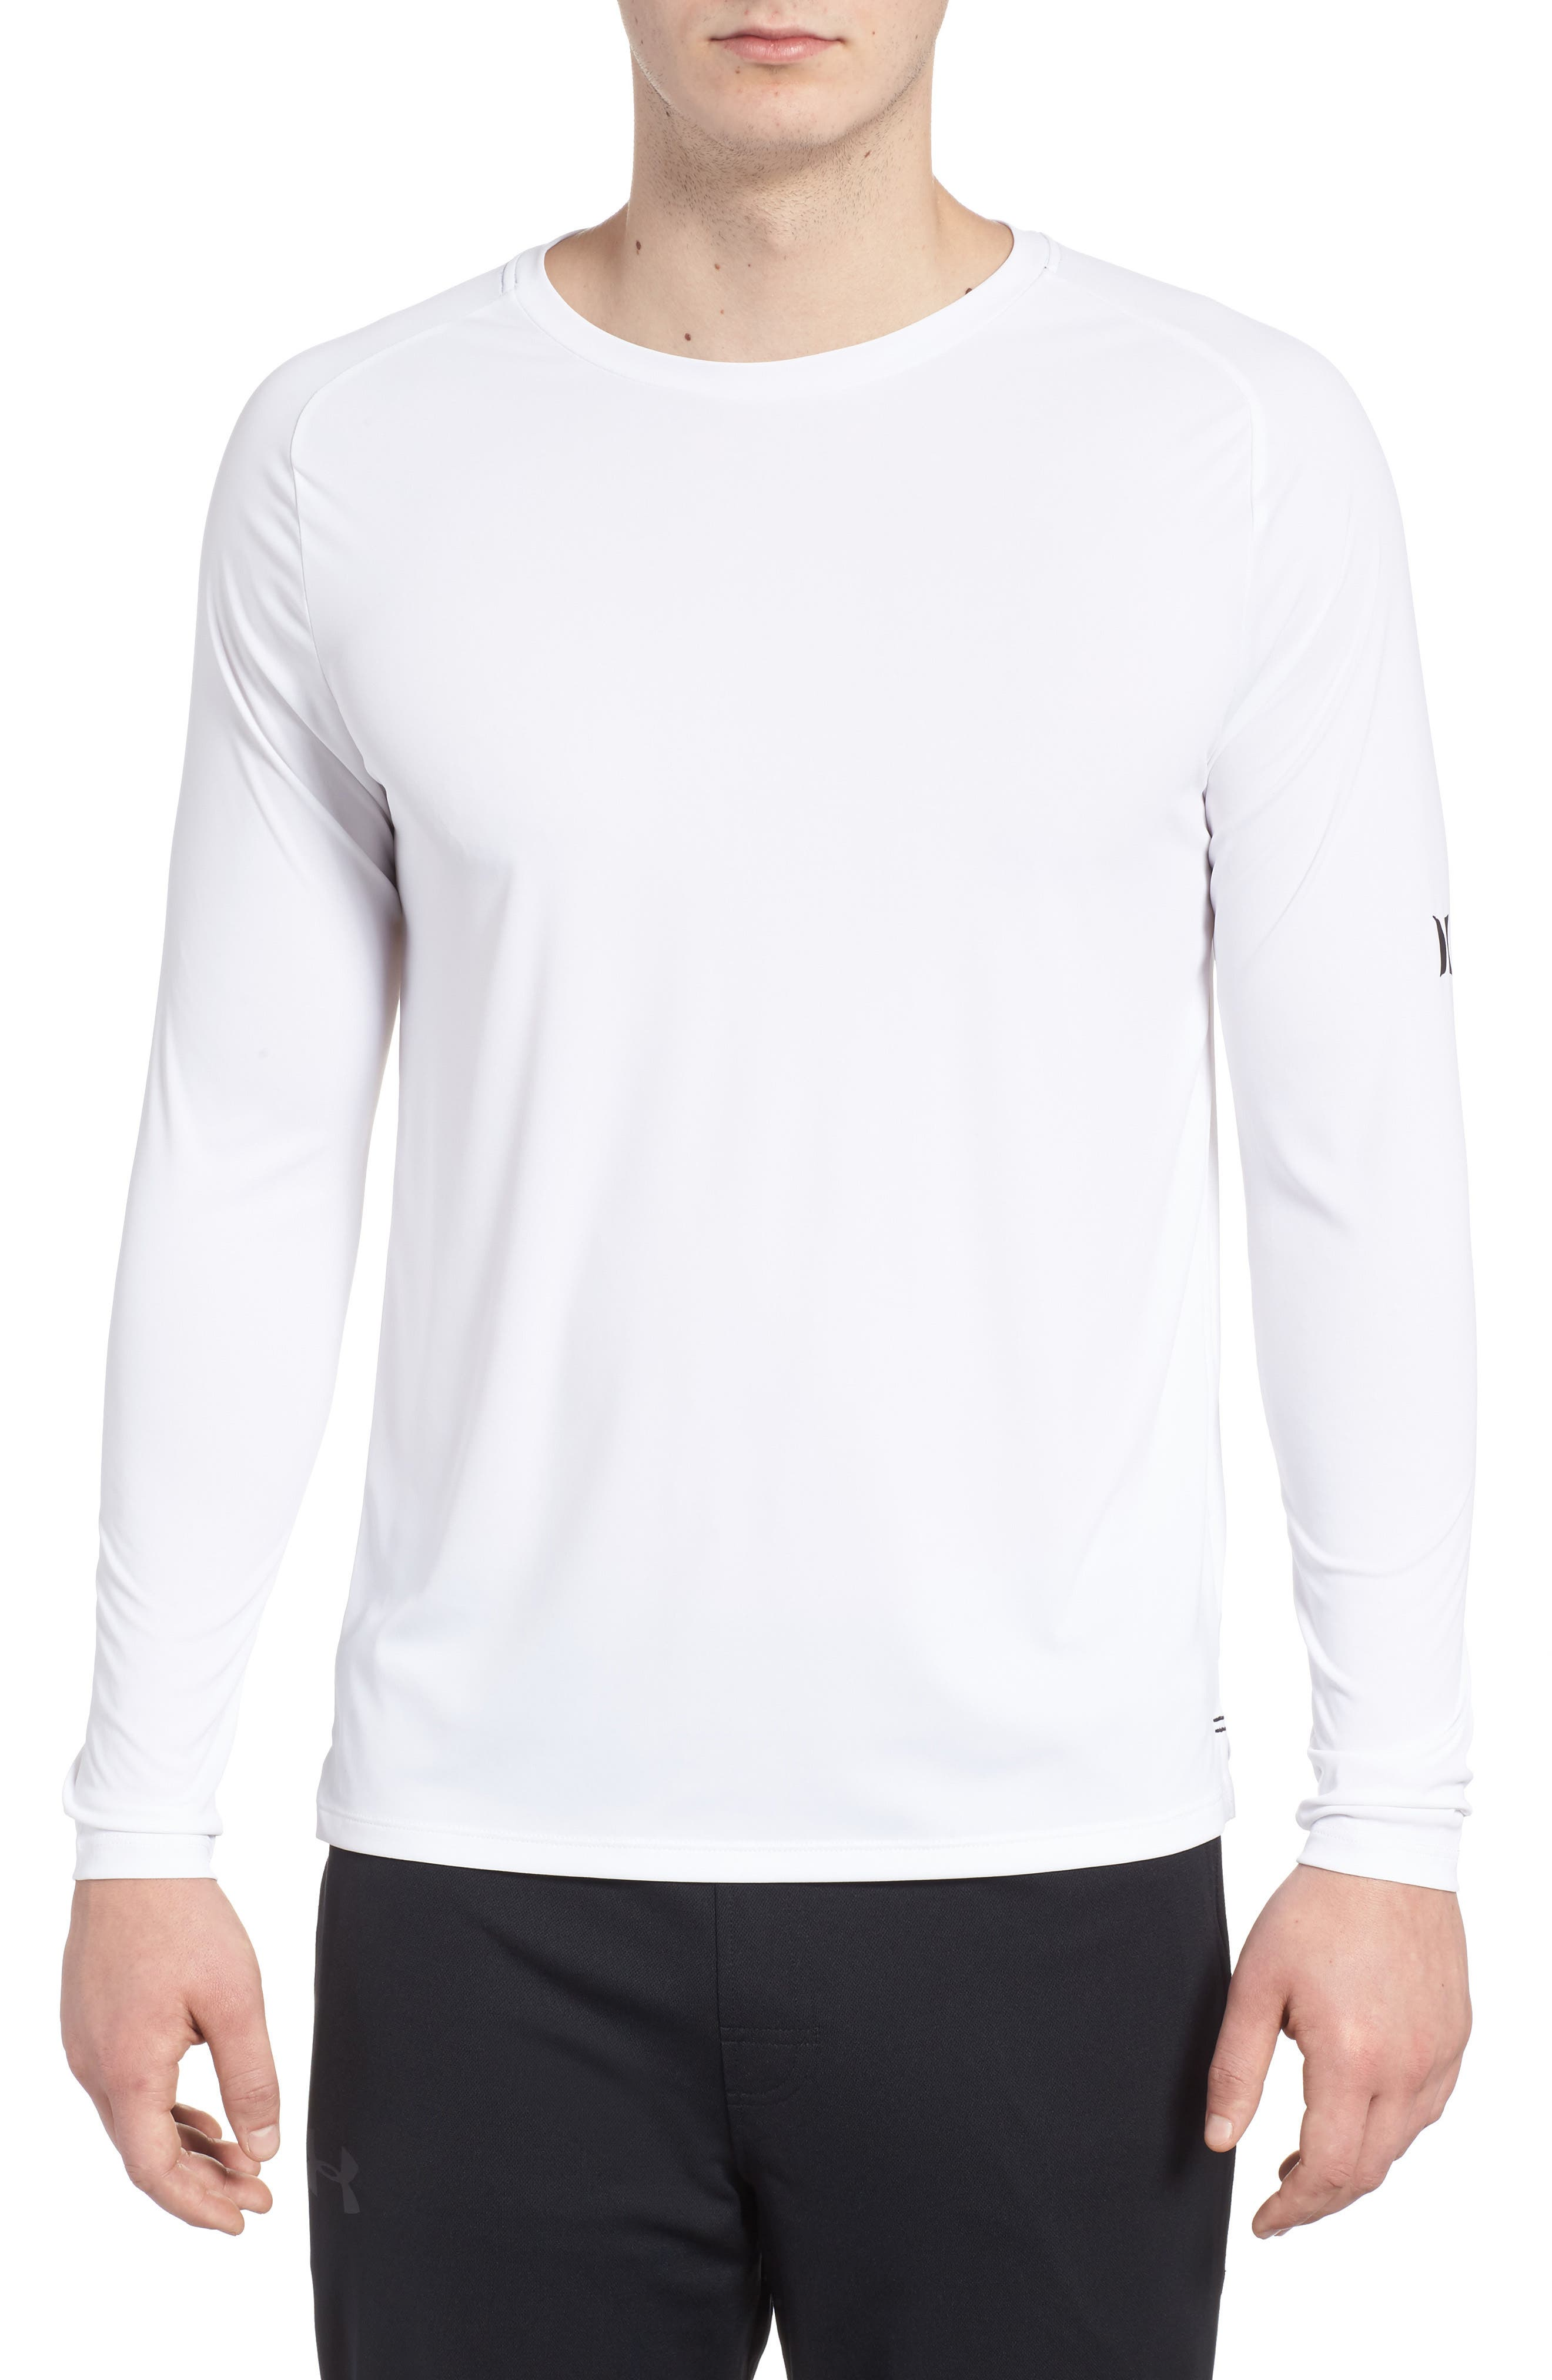 Icon Surf Shirt,                         Main,                         color, White